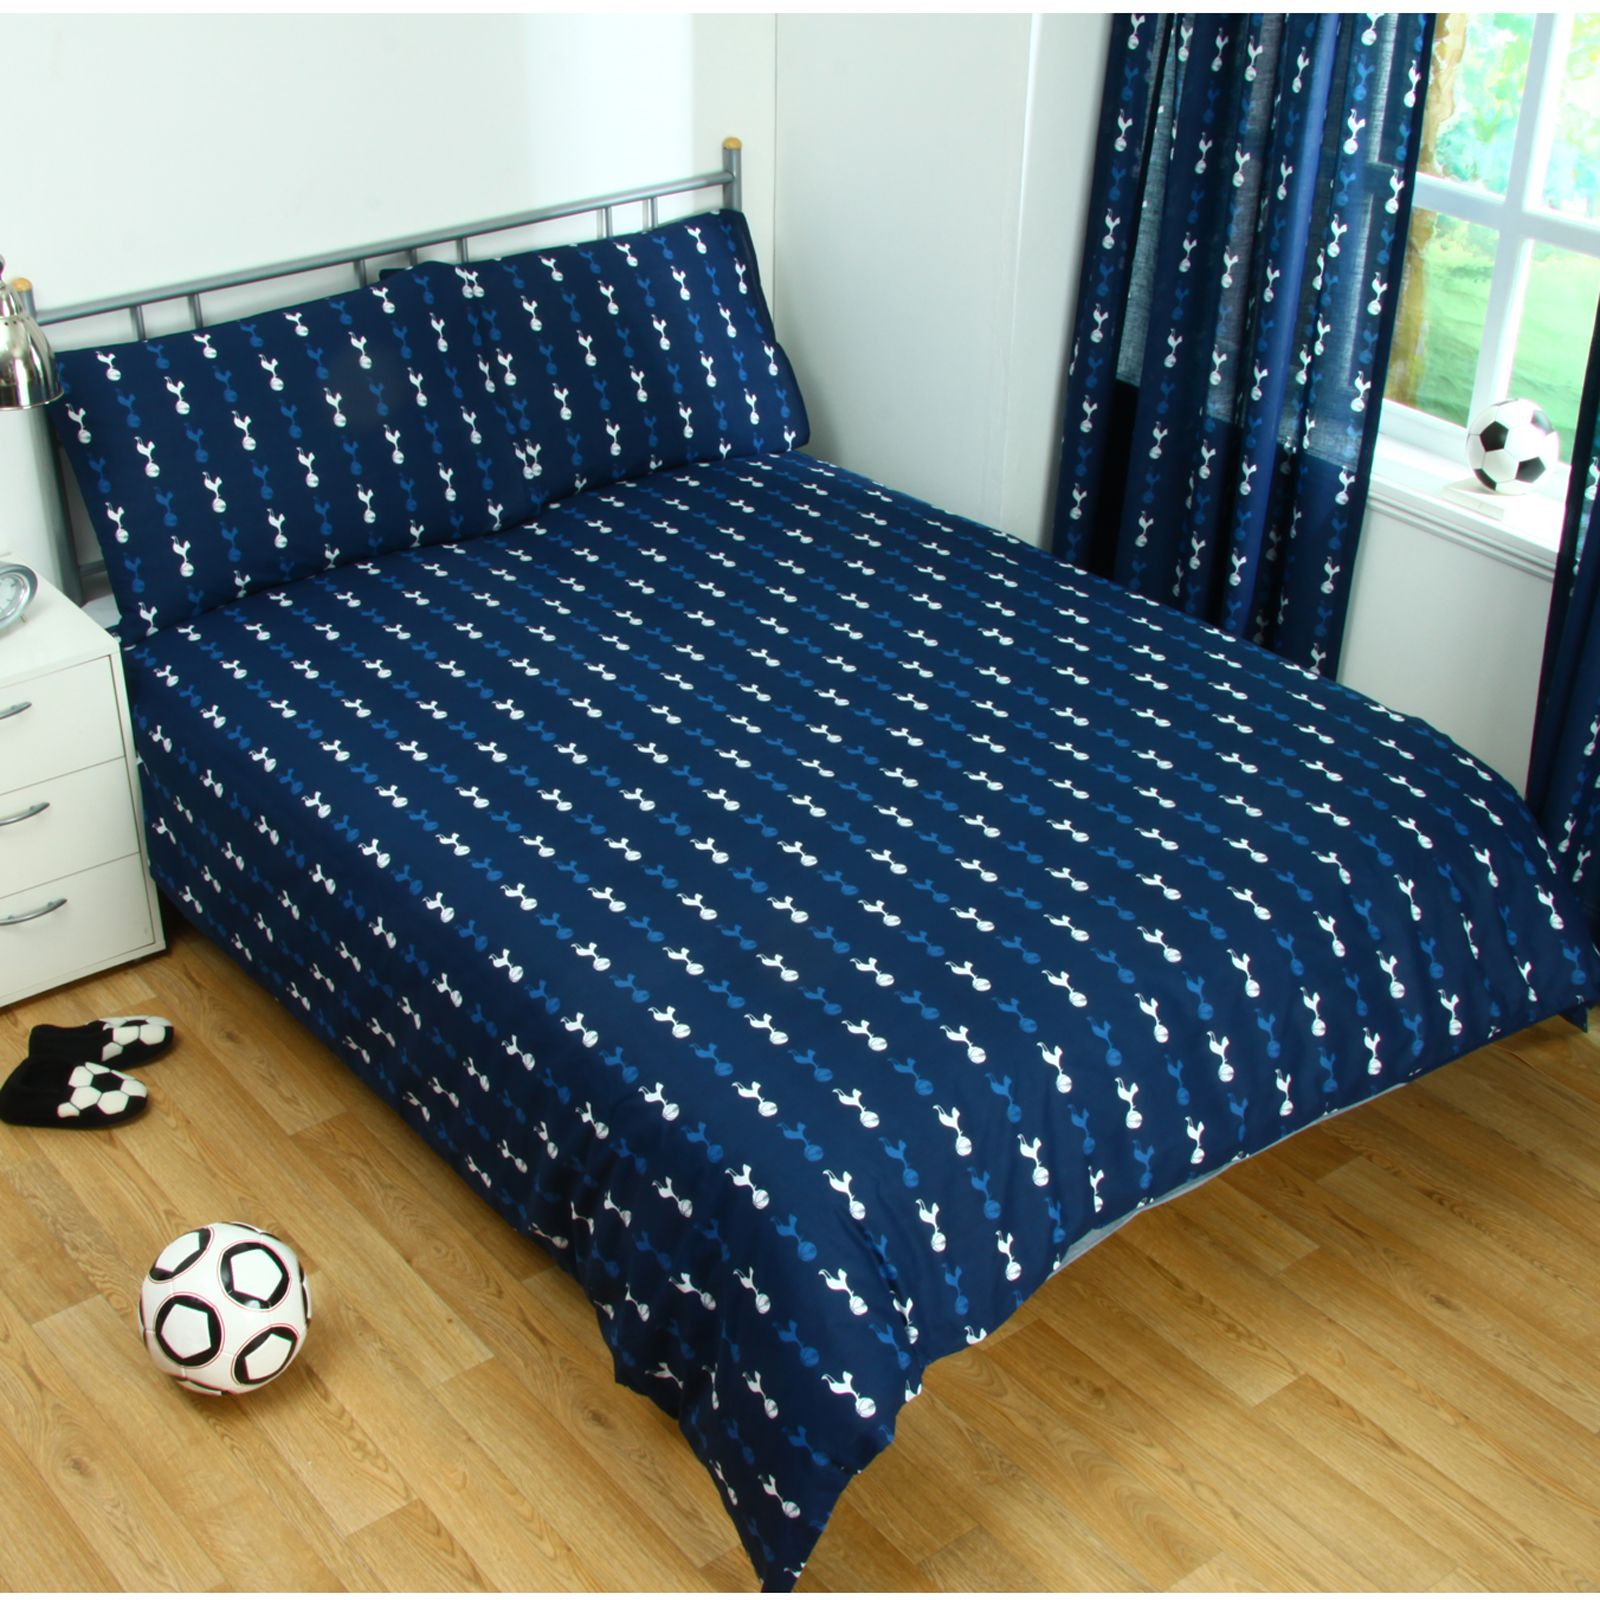 Football double sets housse de couette literie officiel for Housse couette foot